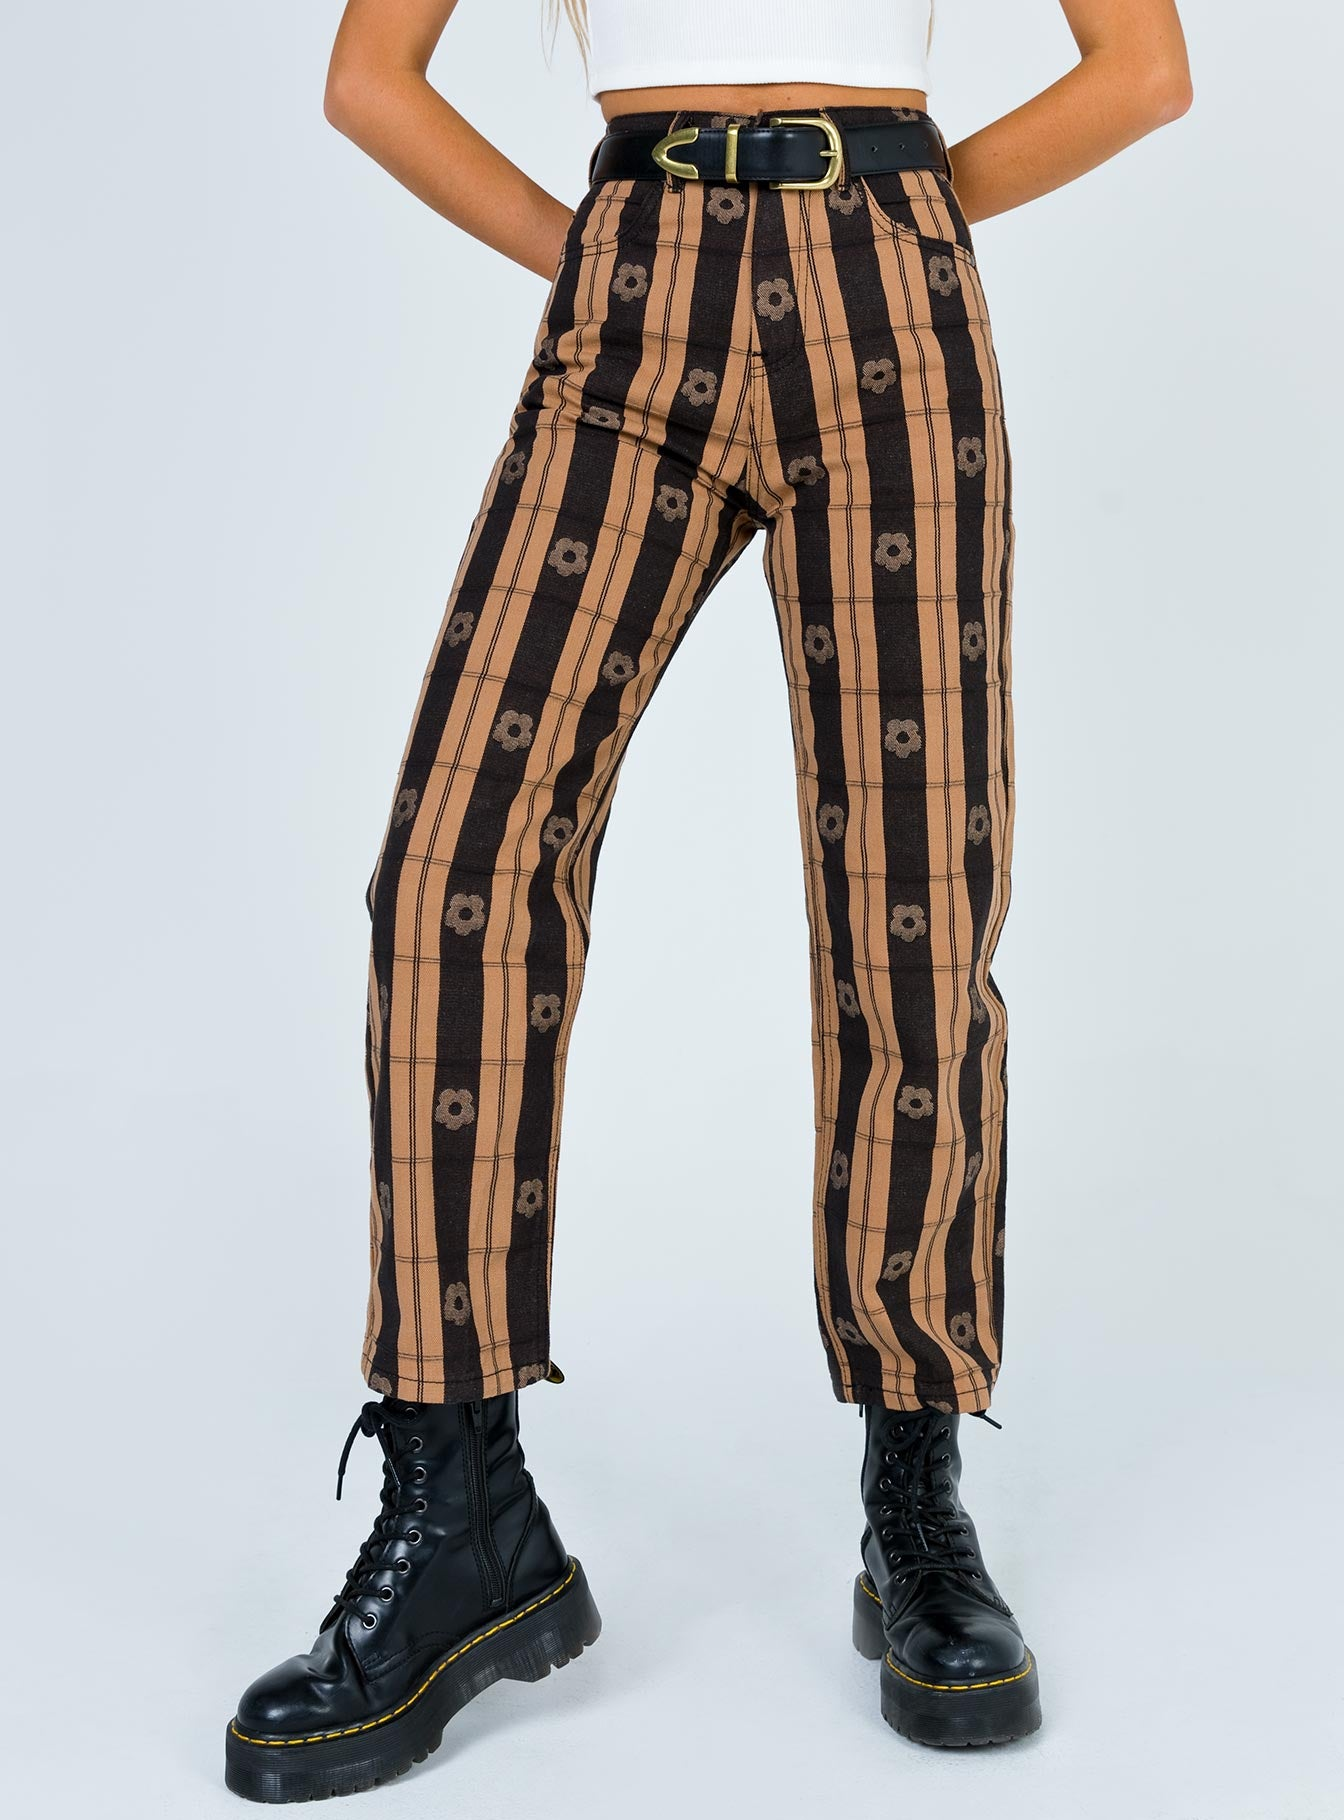 Afends Shelby Poppy Check High Waist Jeans